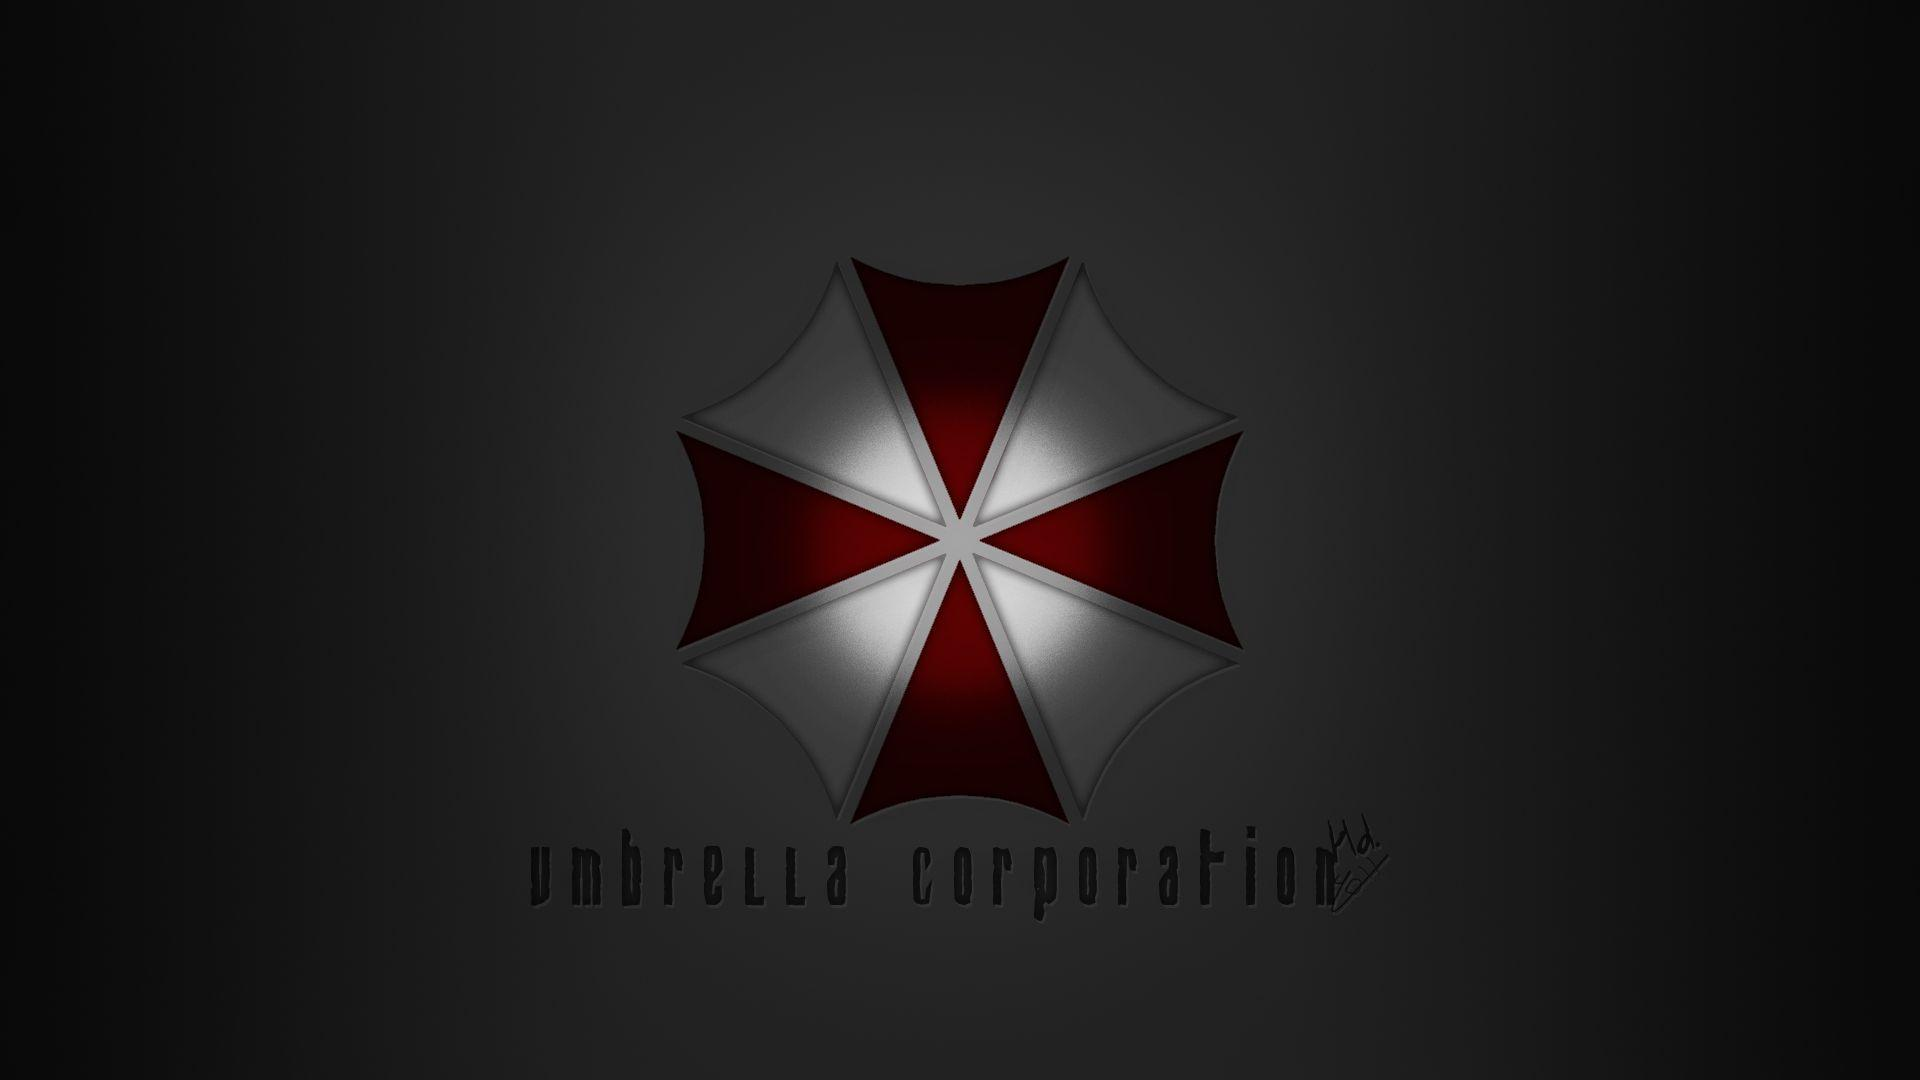 Astounding Umbrella Corporation Wallpaper 1920x1080PX ~ Umbrella ...